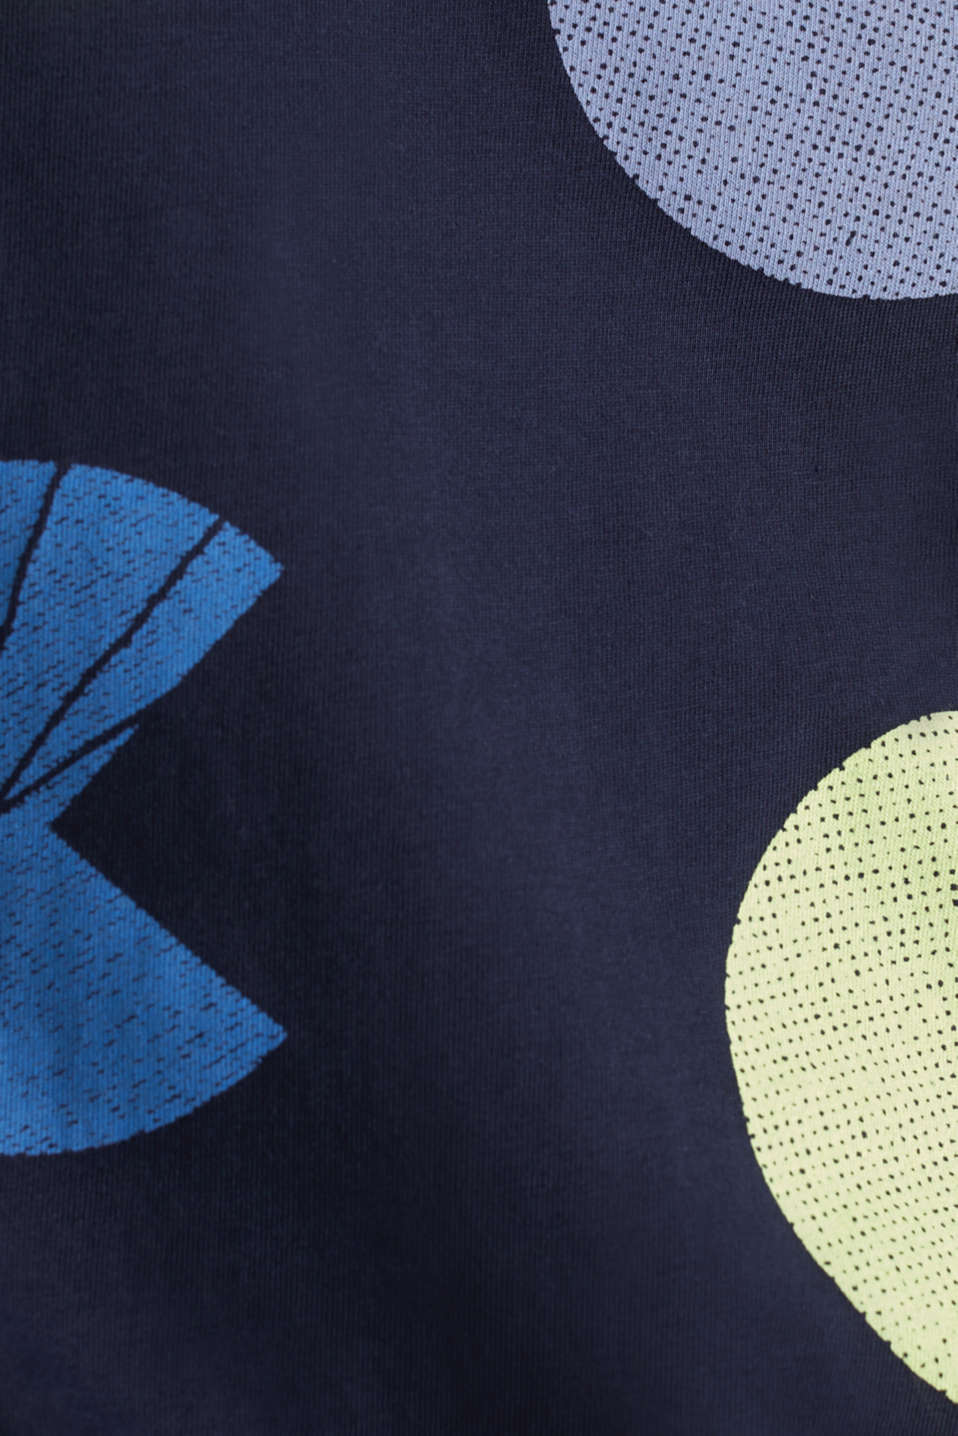 T-shirt with a graphic print, 100% cotton, NAVY, detail image number 4